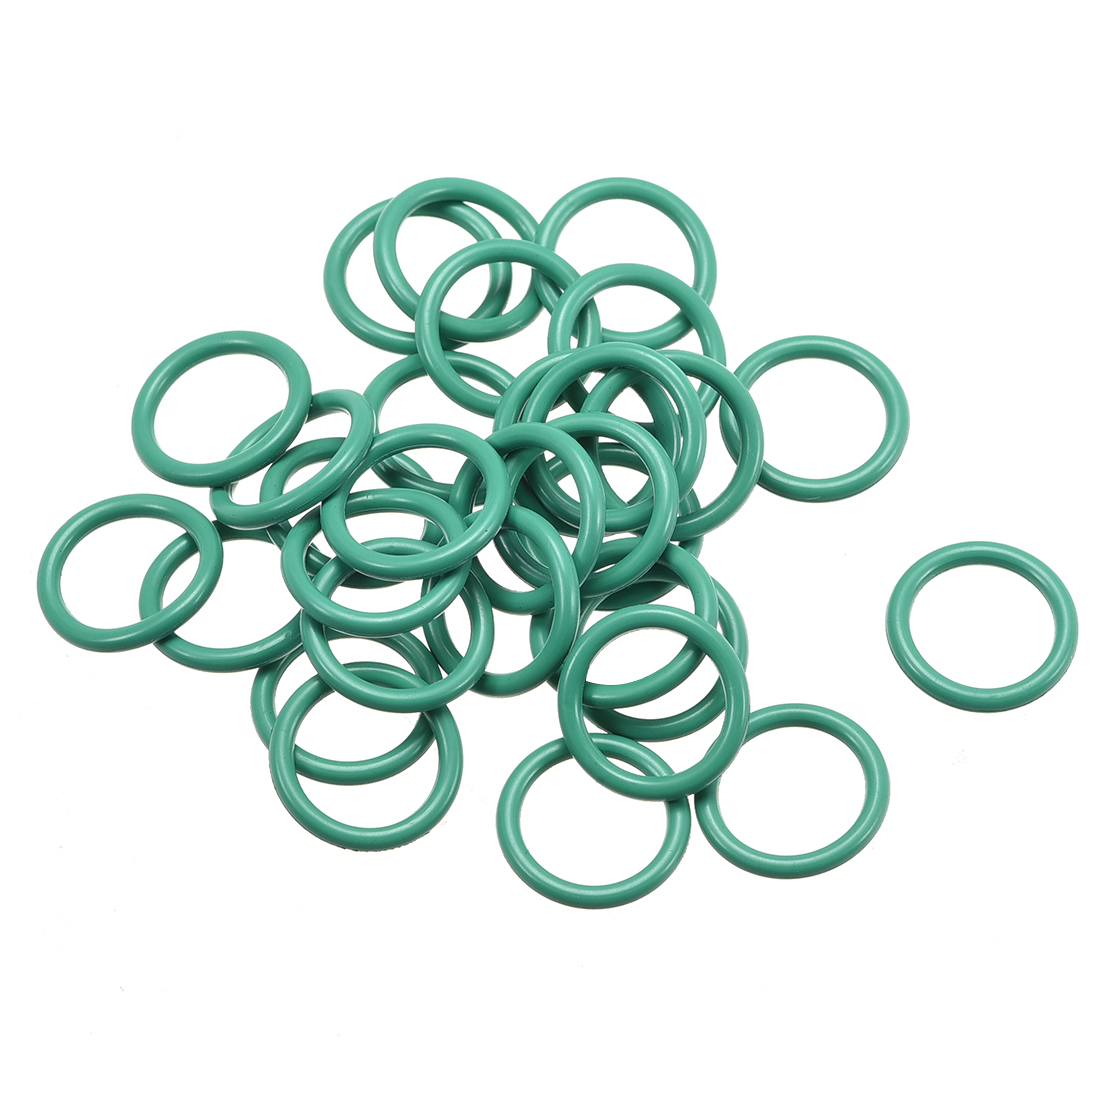 100 Pcs Green Rubber 15mm x 11mm x 2mm Oil Seal O Rings Gaskets Washers